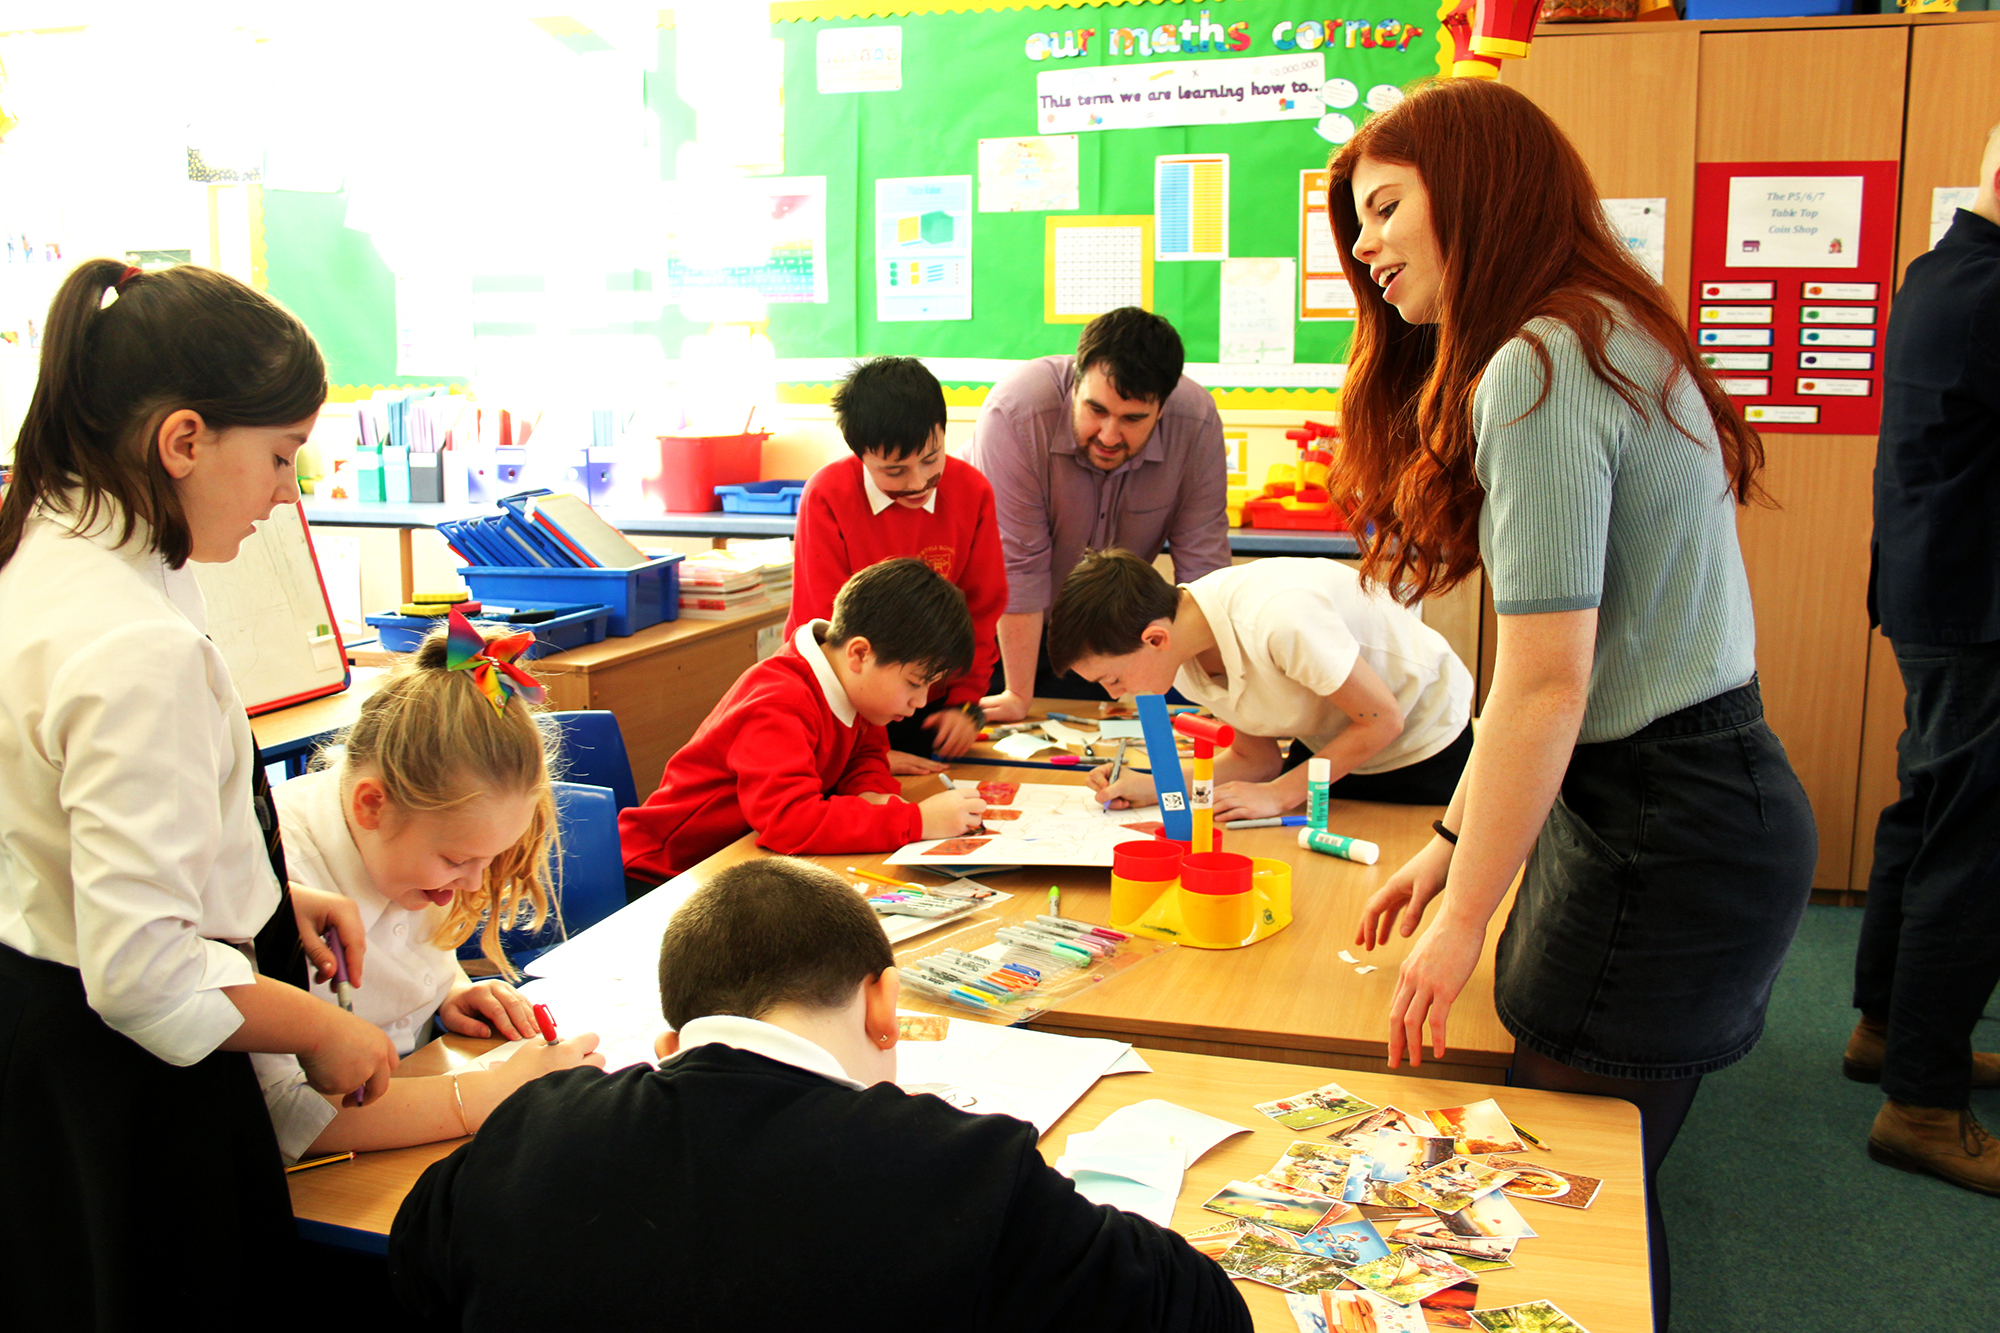 Melissa working with pupils at Newtyle Primary School to brainstorm ideas.